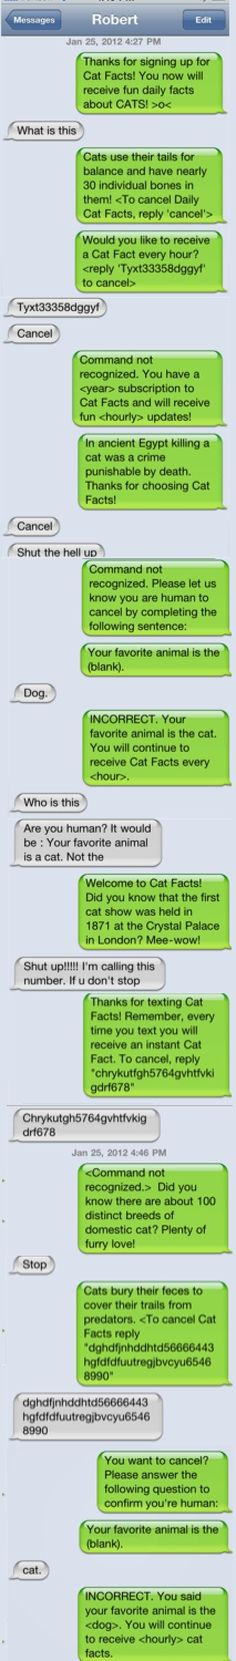 The cat prank. This is funny to read - creative - but lets be clear...I HATE PRACTICAL JOKES.